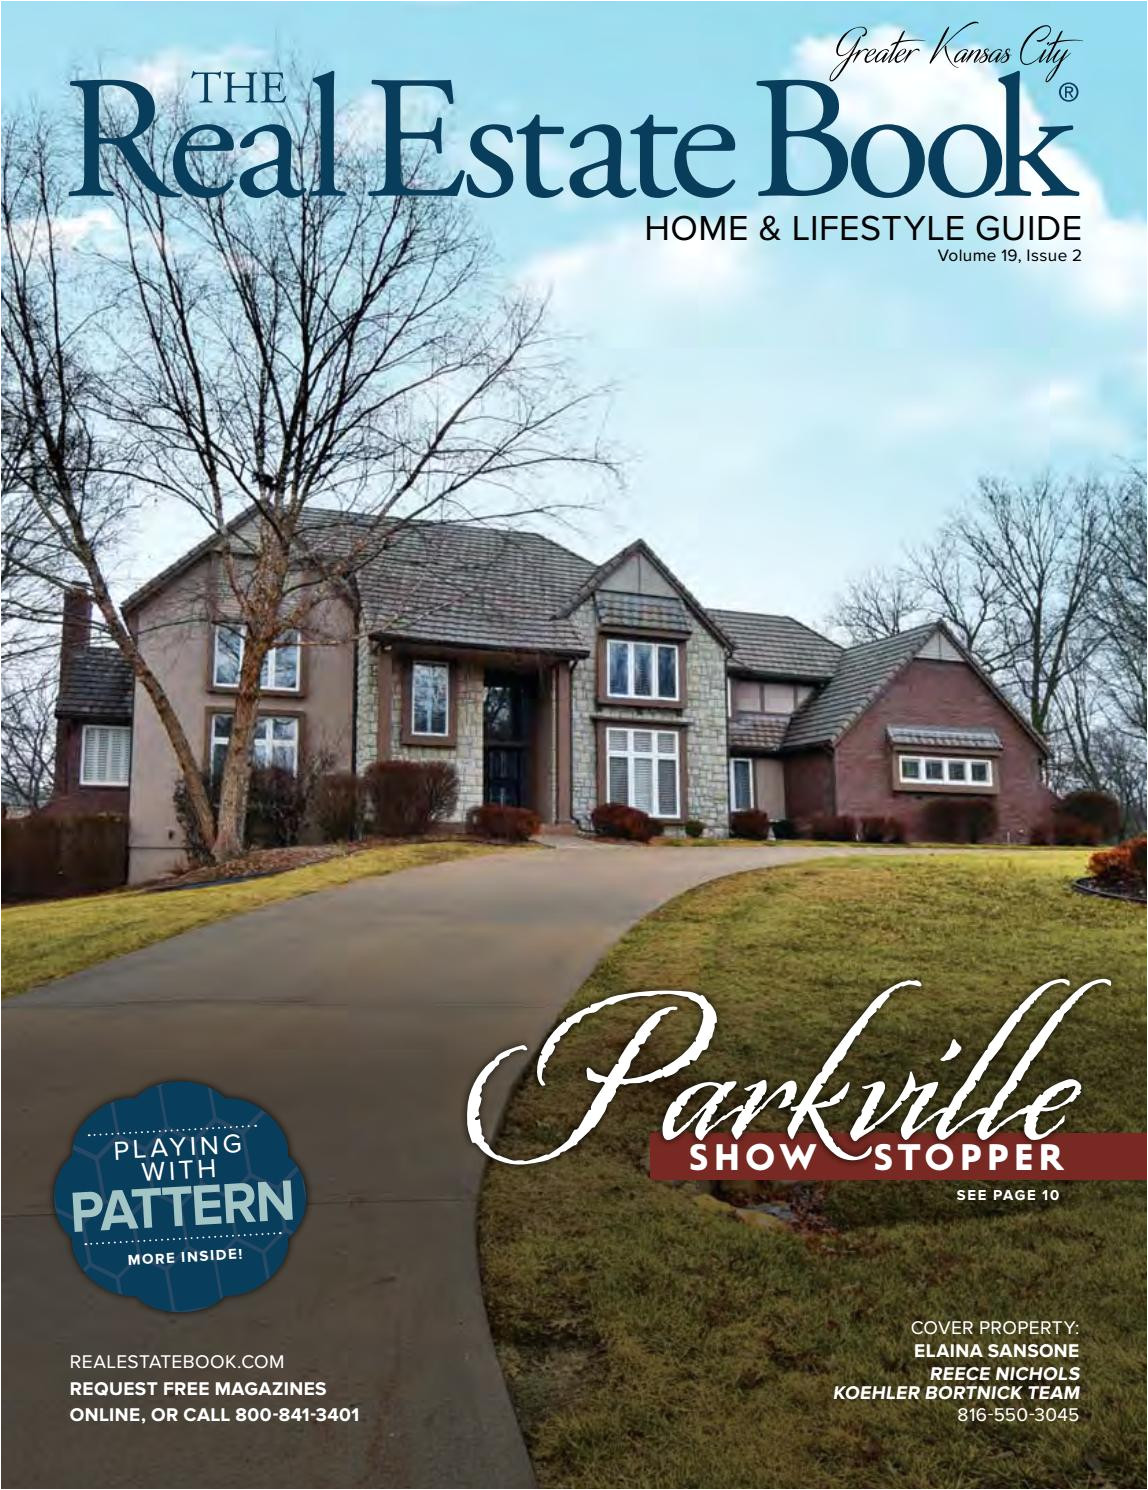 the real estate book of greater kansas city by kc marketing solutions the real estate book of kansas city issuu